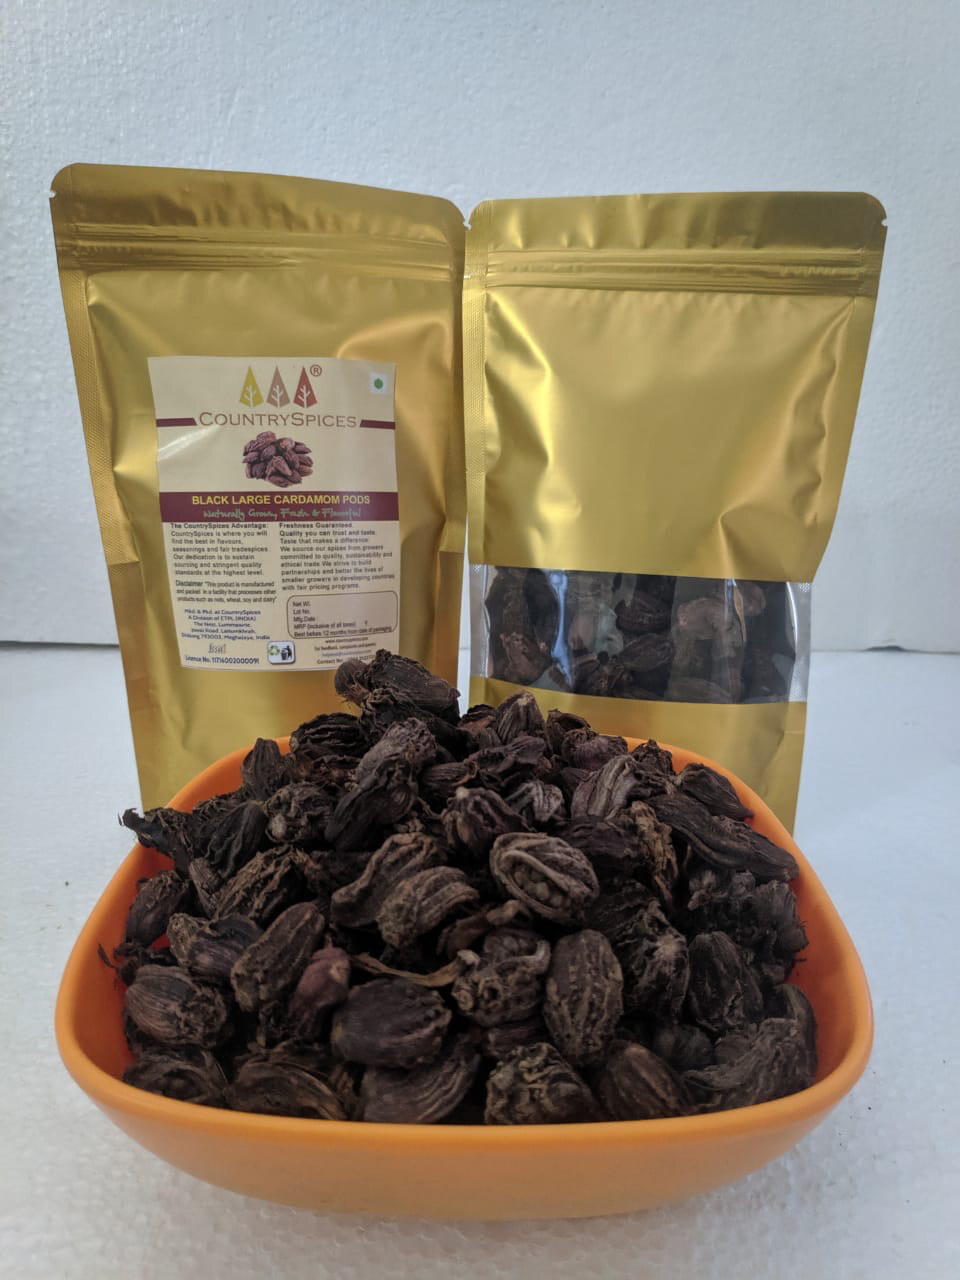 CountrySpices Black Large Cardamom Pods